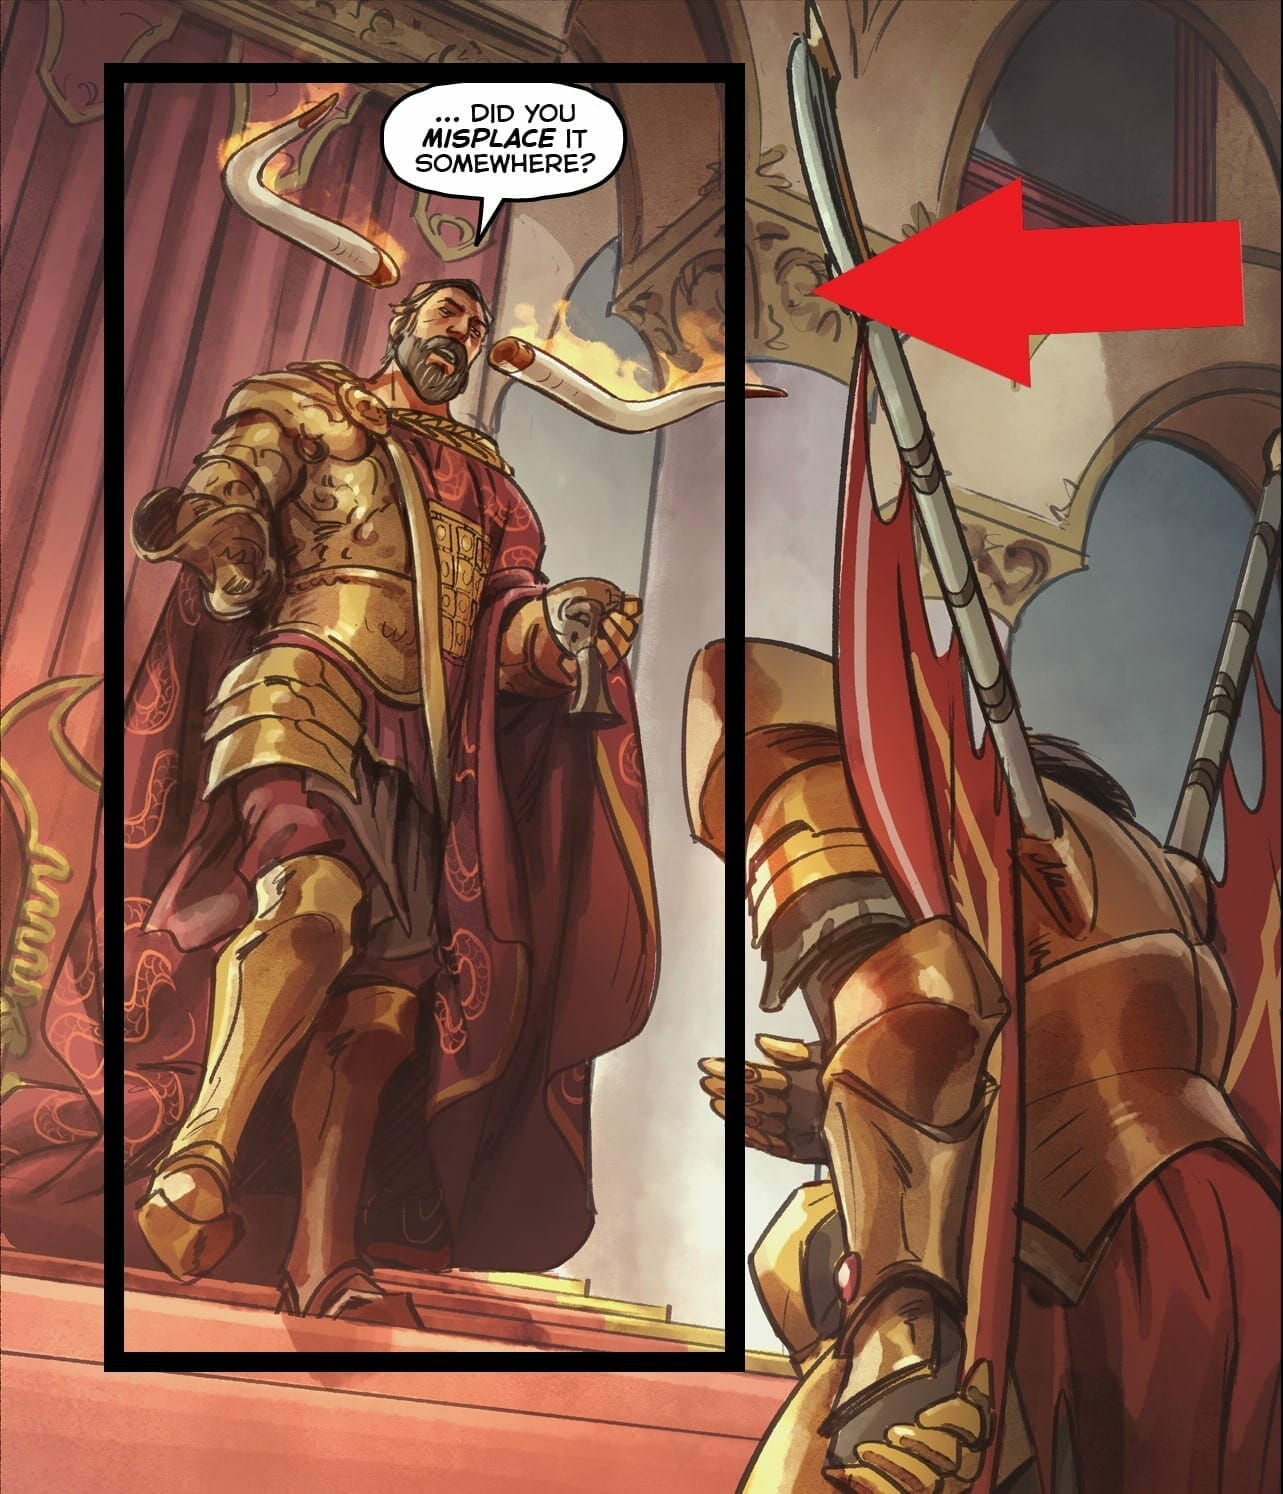 Valve might just Revealed the Dota 2 hero Mars in the new Comic